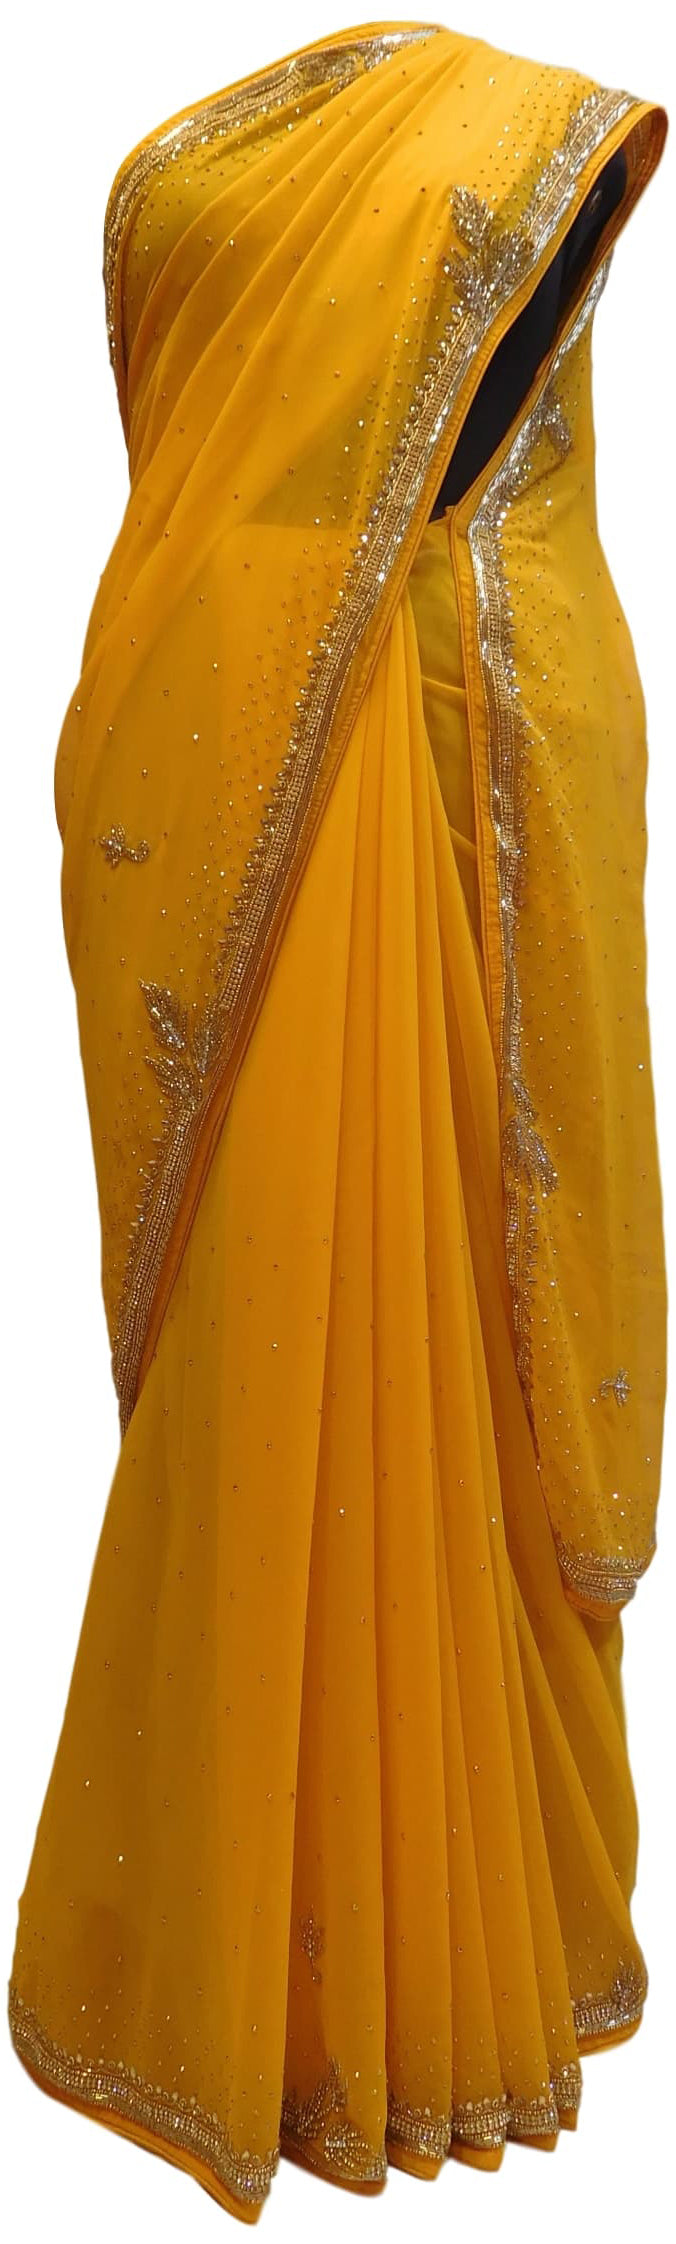 Yellow Designer Georgette Hand Embroidery Cutdana Stone Beads Work Saree Sari